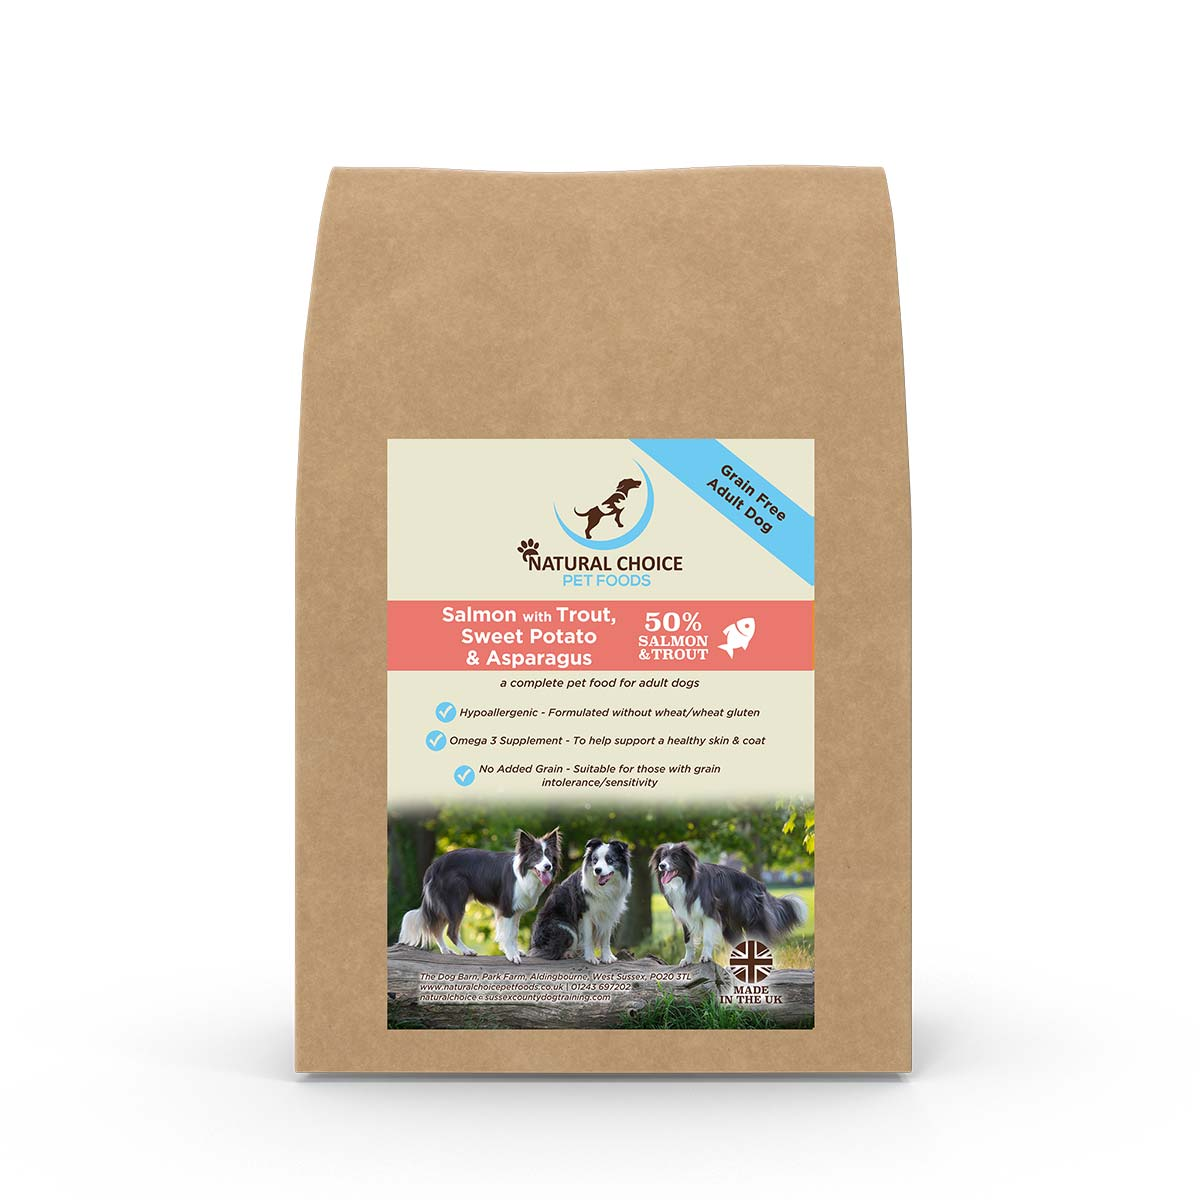 Natural Choice - Salmon, Trout, Sweet Potato and Asparagus - Grain Free Dry Dog Food